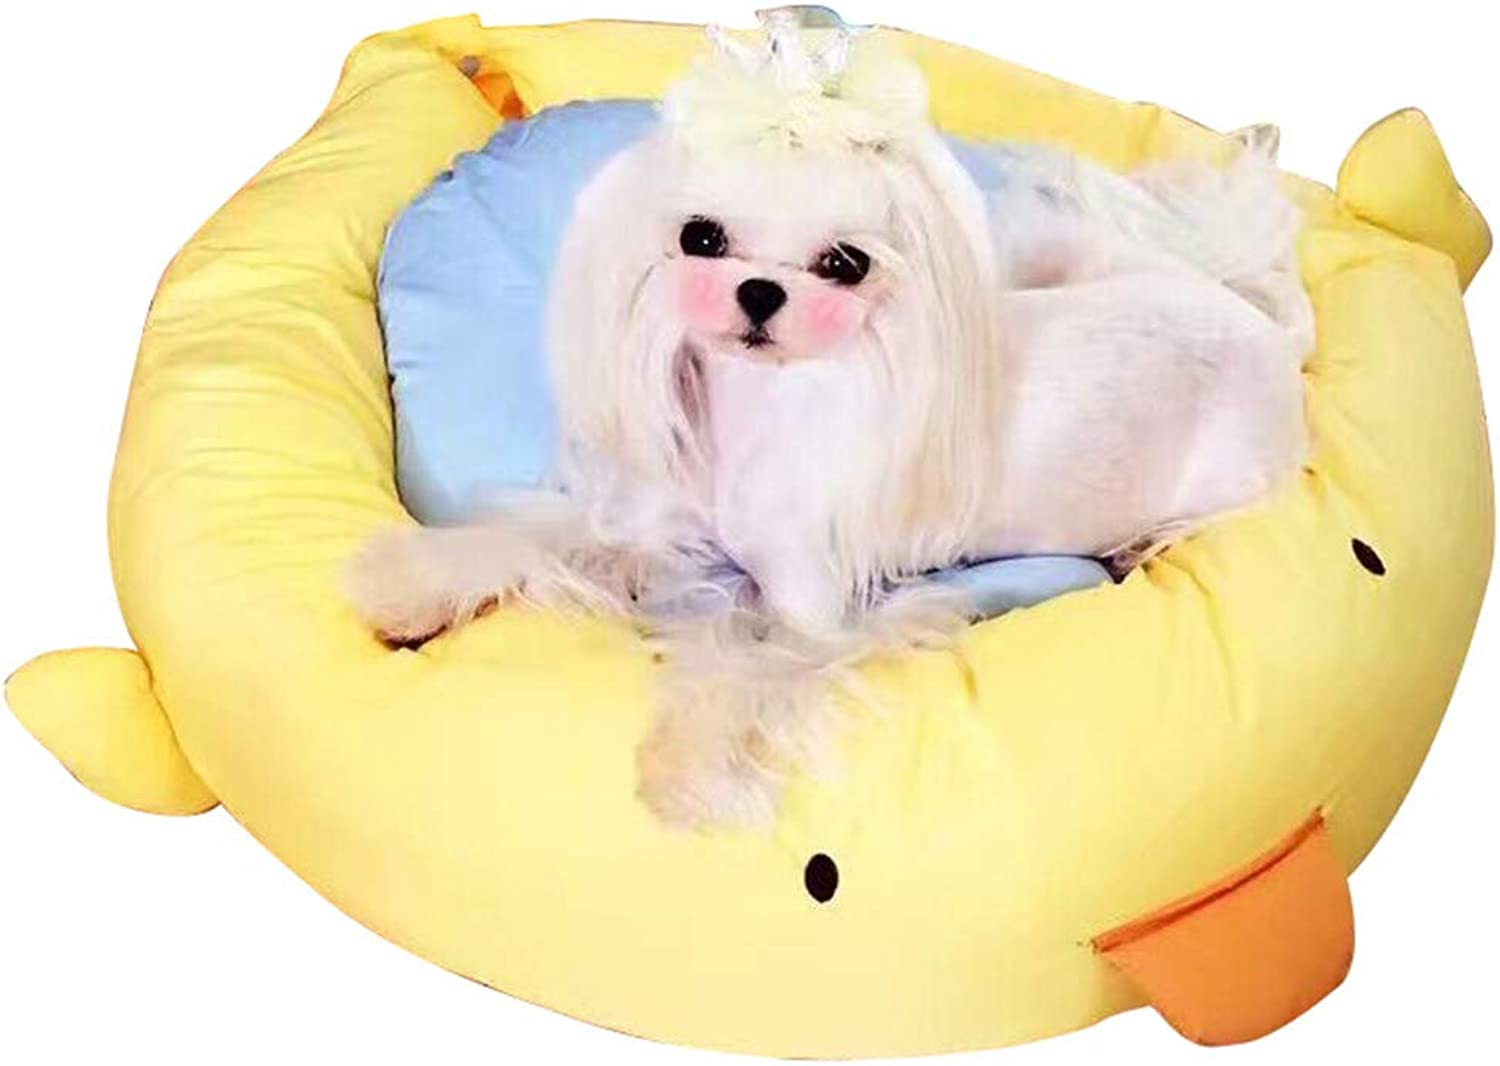 Hxyan Pet Dog Hole Large Indoor Dog Bed Cat Bed Duck Cartoon Style PP Cotton (diameter  70cm) (color   Yellow)